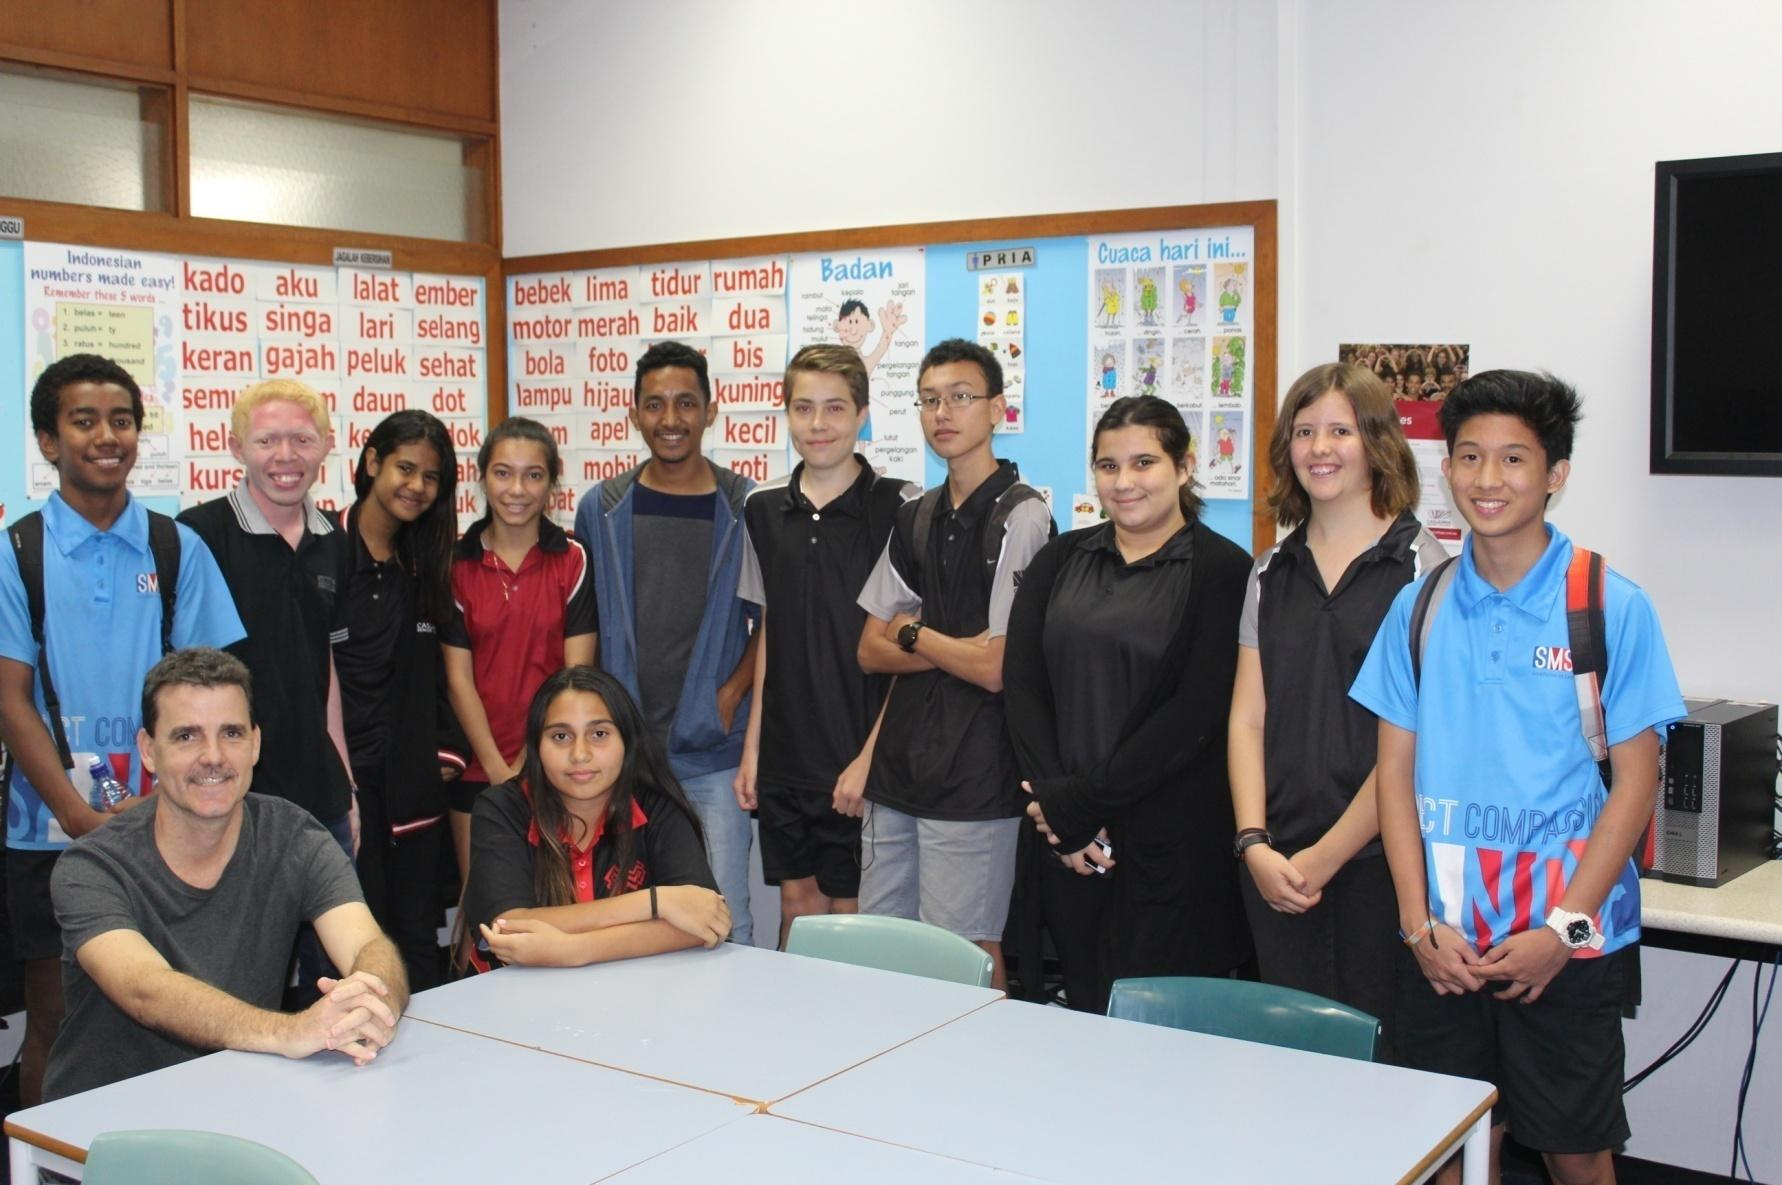 Taking picture with the teacher Bapak Grant Christie and student of Casuarina Senior Collage when already finished the class of Bahasa Indonesia in Casuarina, Darwin.